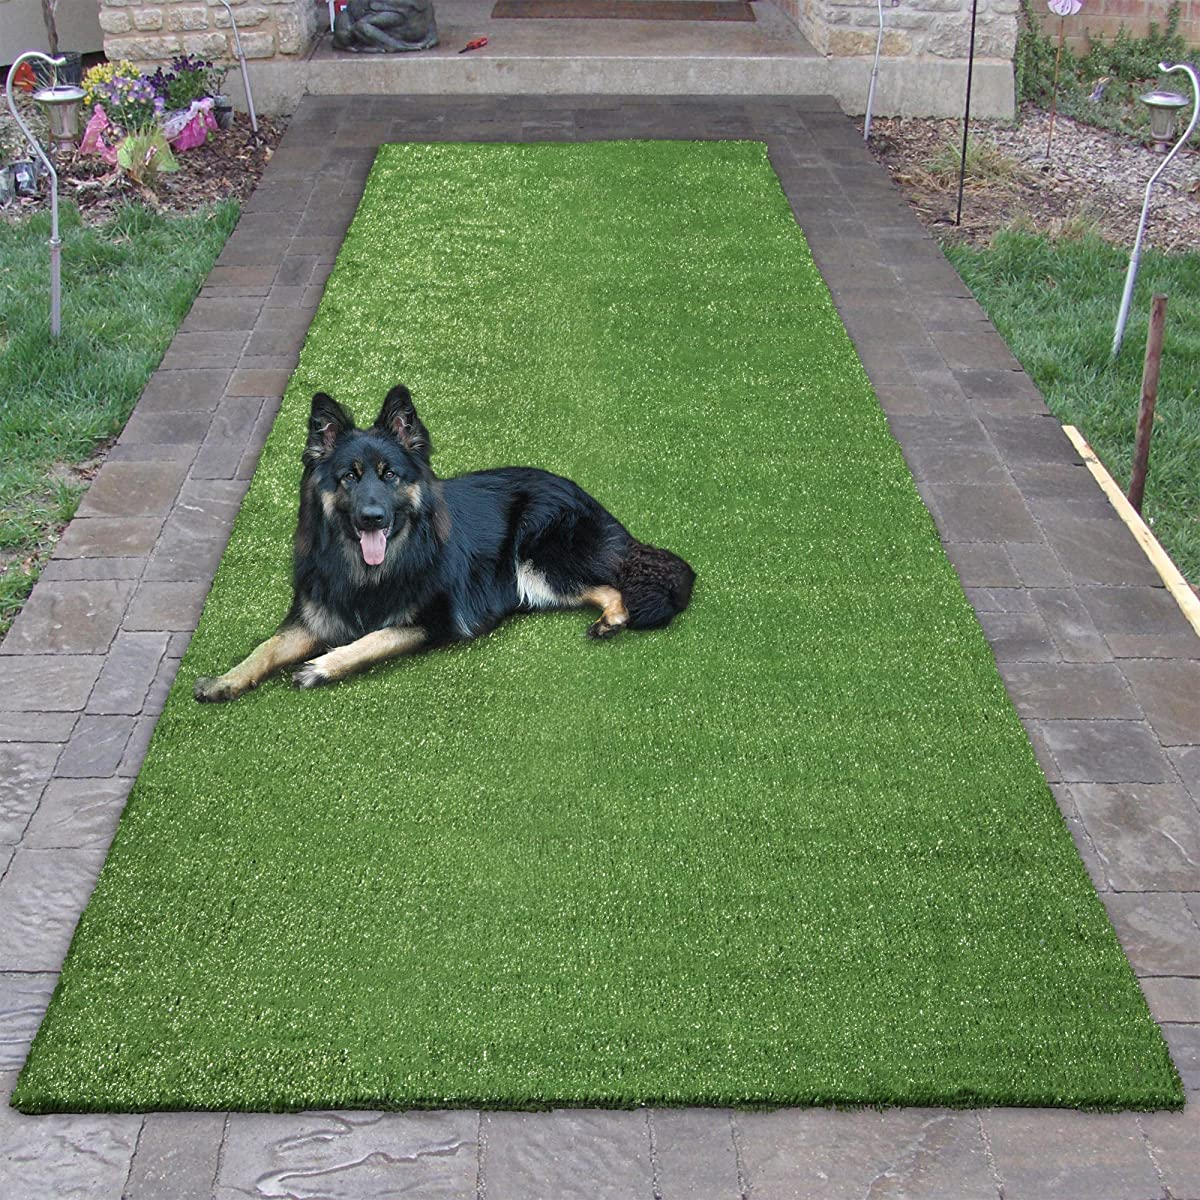 """Sweethome Meadowland Collection Indoor and Outdoor Green Artificial Grass Turf Runner Rug 27"""" X 910"""" Green Artificial Grass/Pet mat with Rubber Backed"""